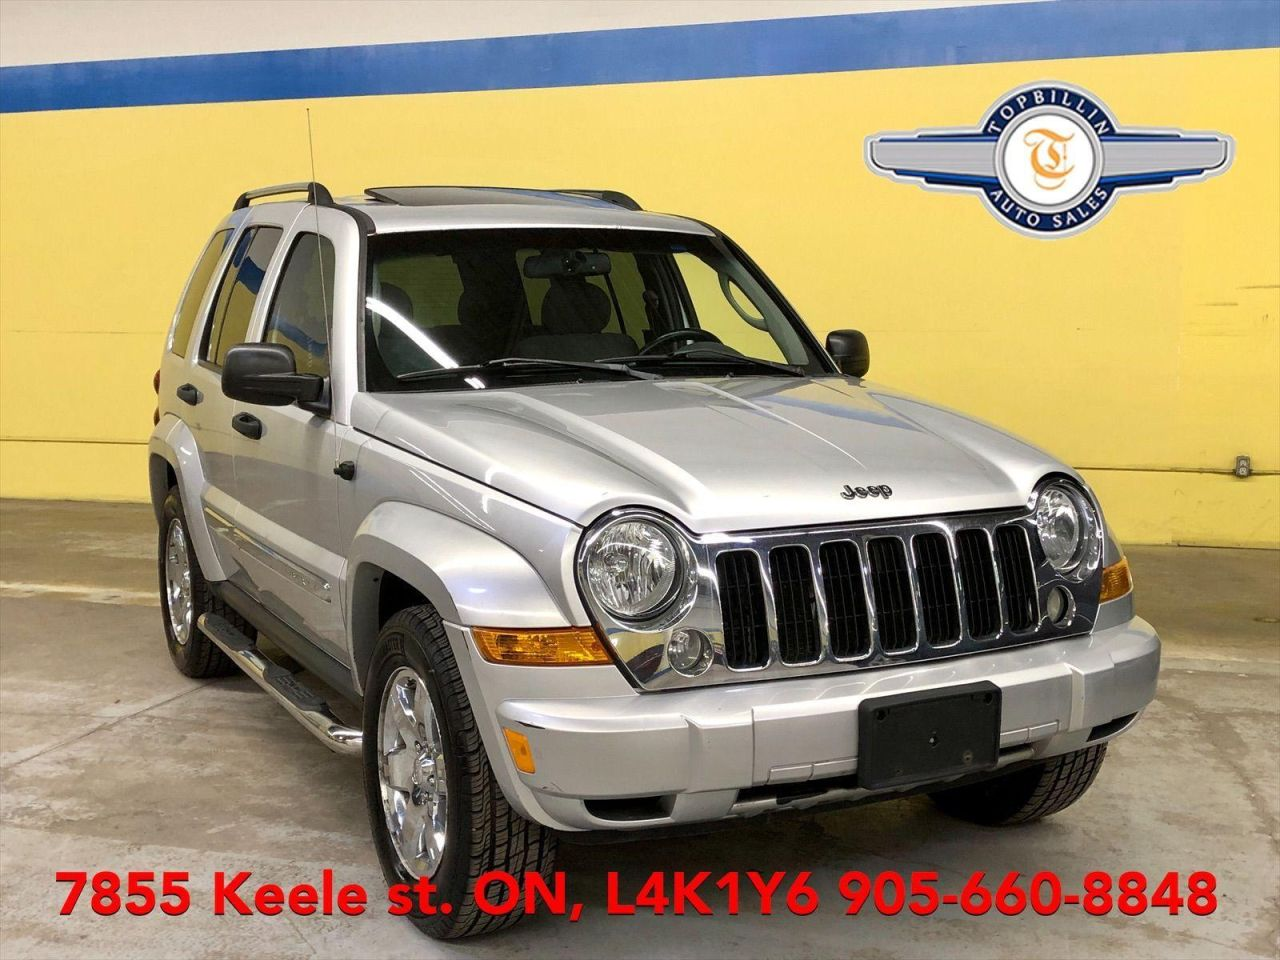 2006 Jeep Liberty Limited AWD Sunroof, 2 Years Warranty